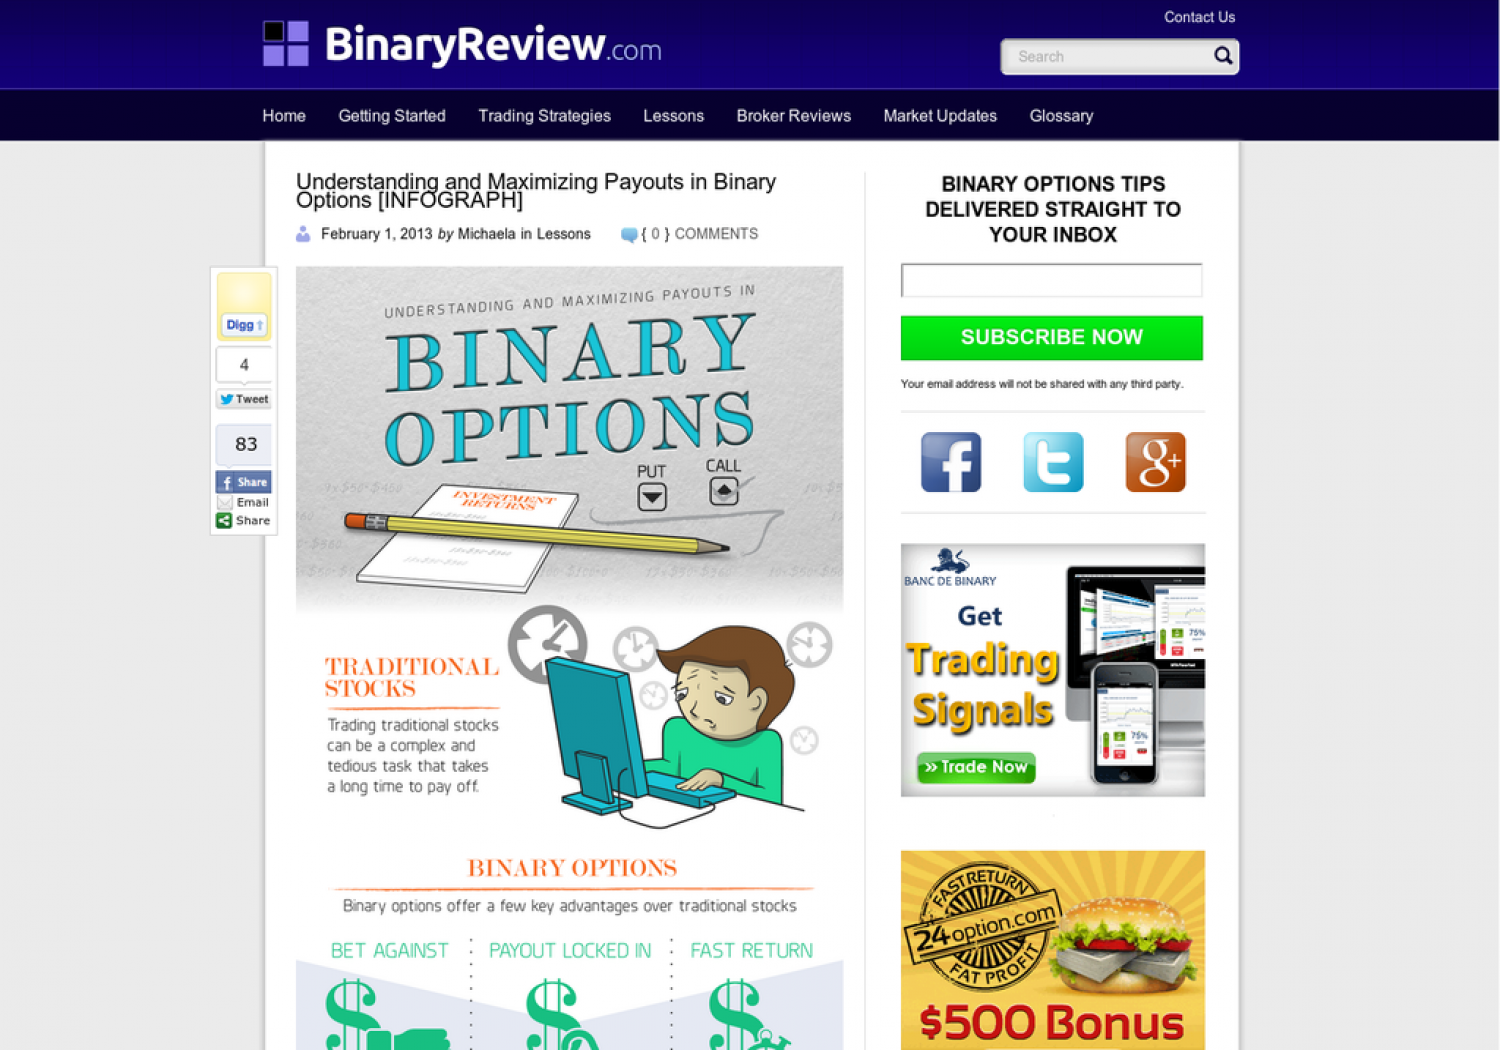 Binary option Infographic